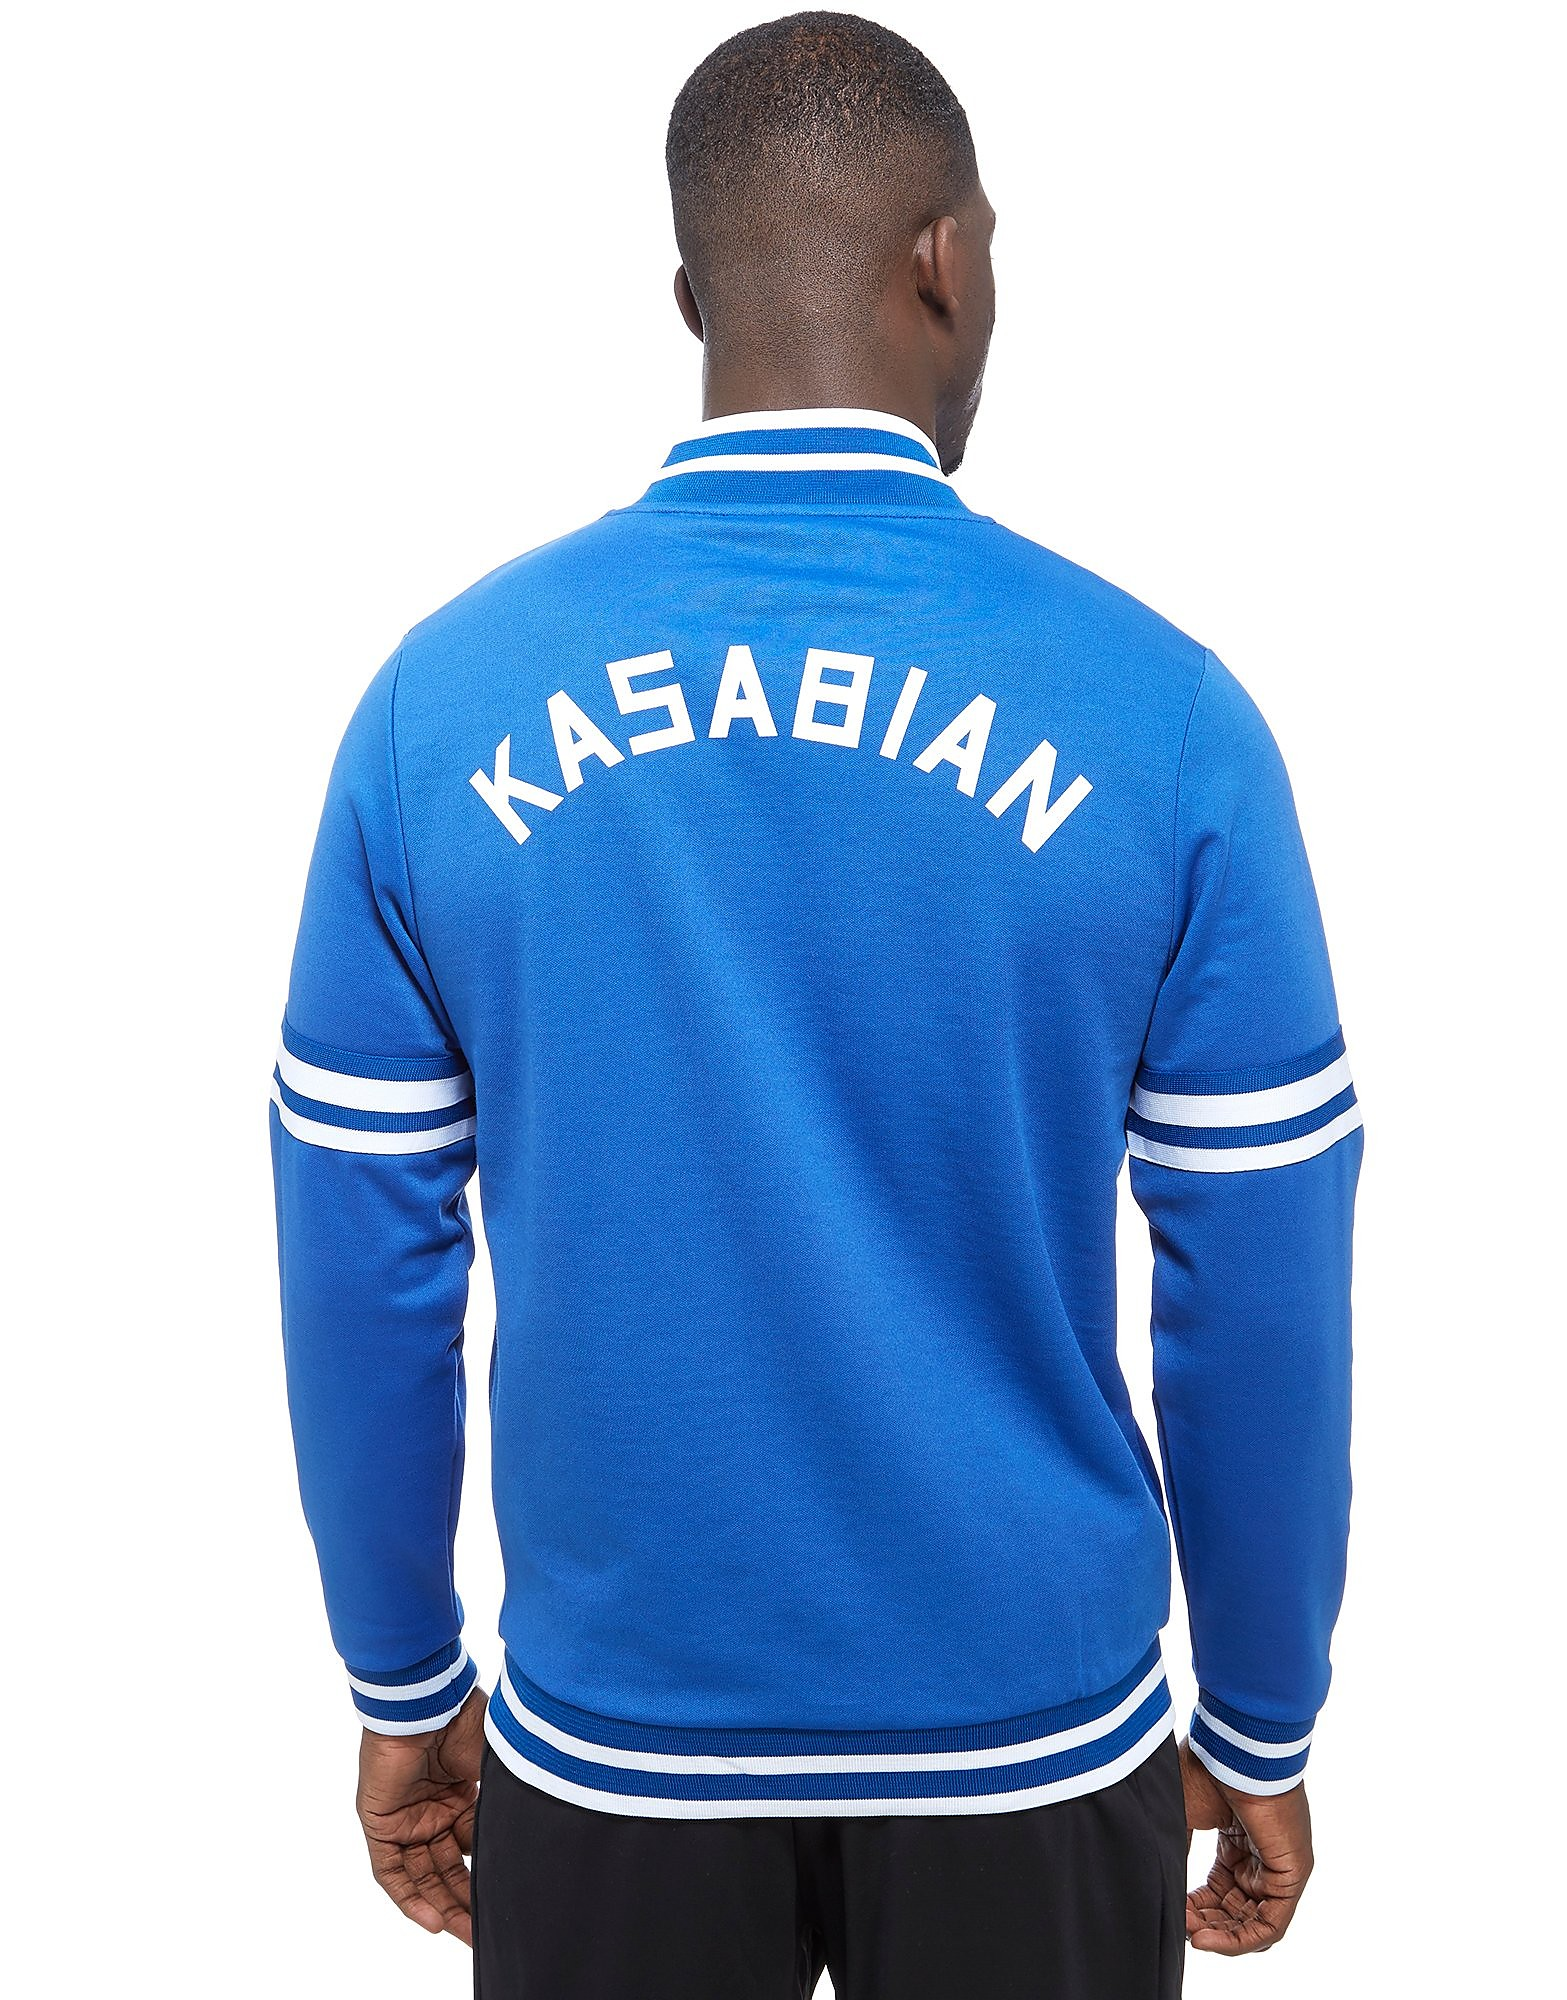 Official Team Leicester City Kasabian Track Top Heren